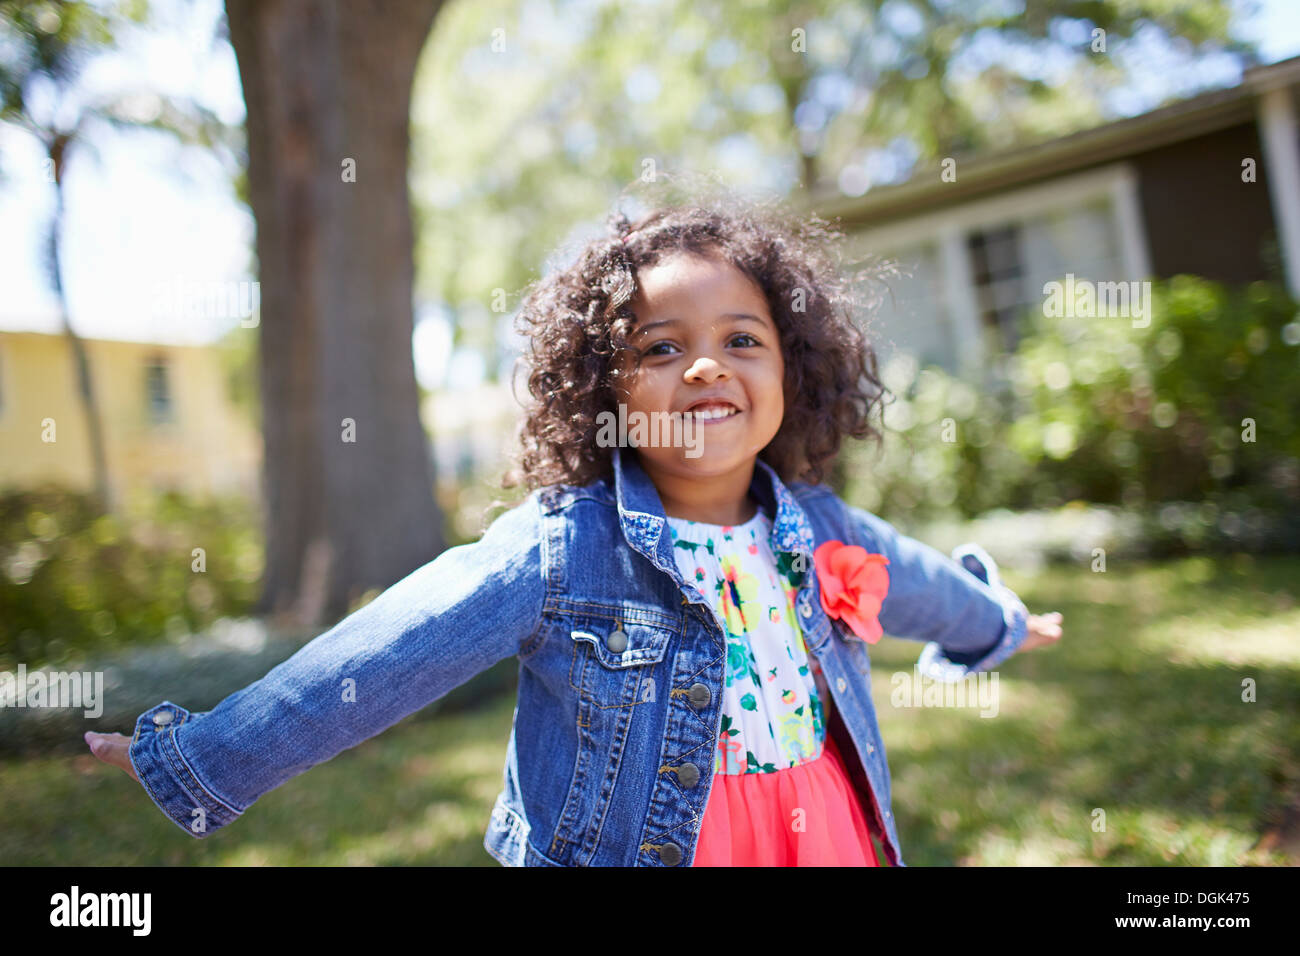 Girl standing in garden with arms wide - Stock Image